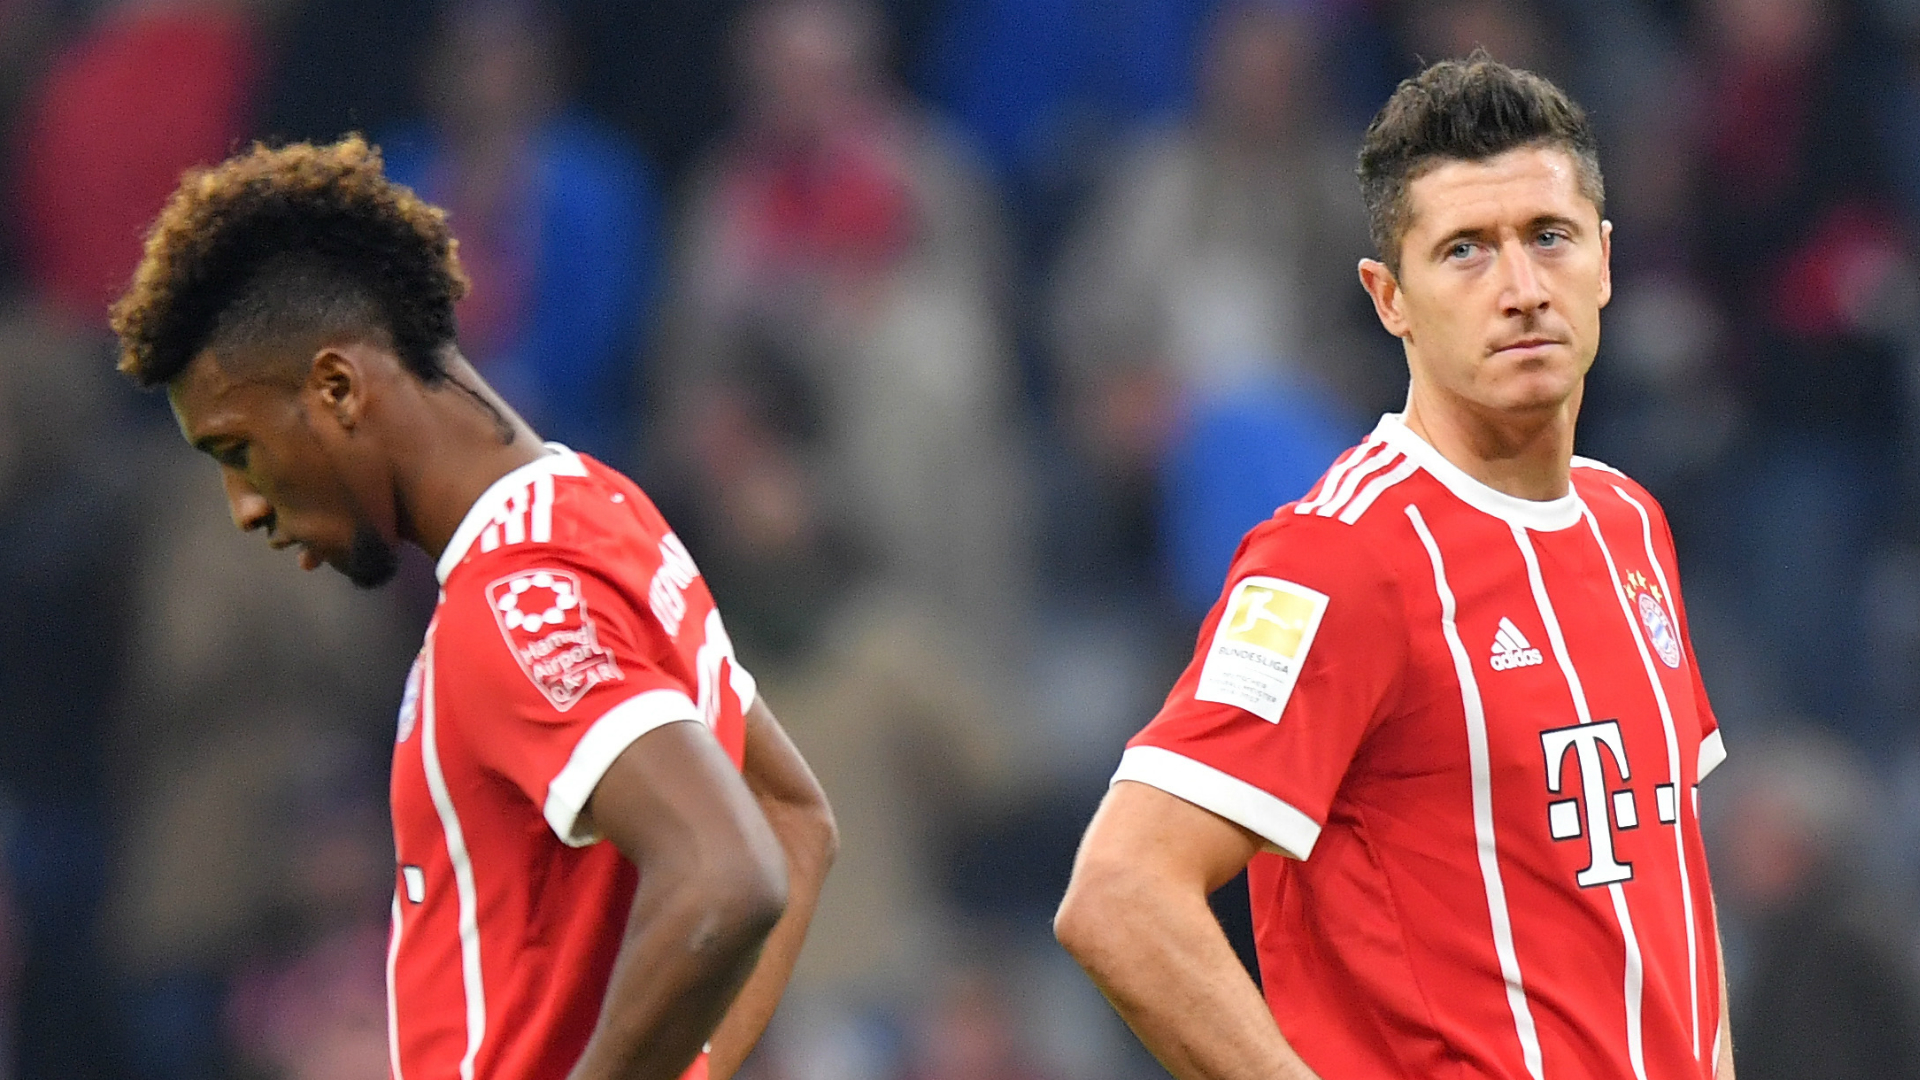 Lewandowski Vs Coman